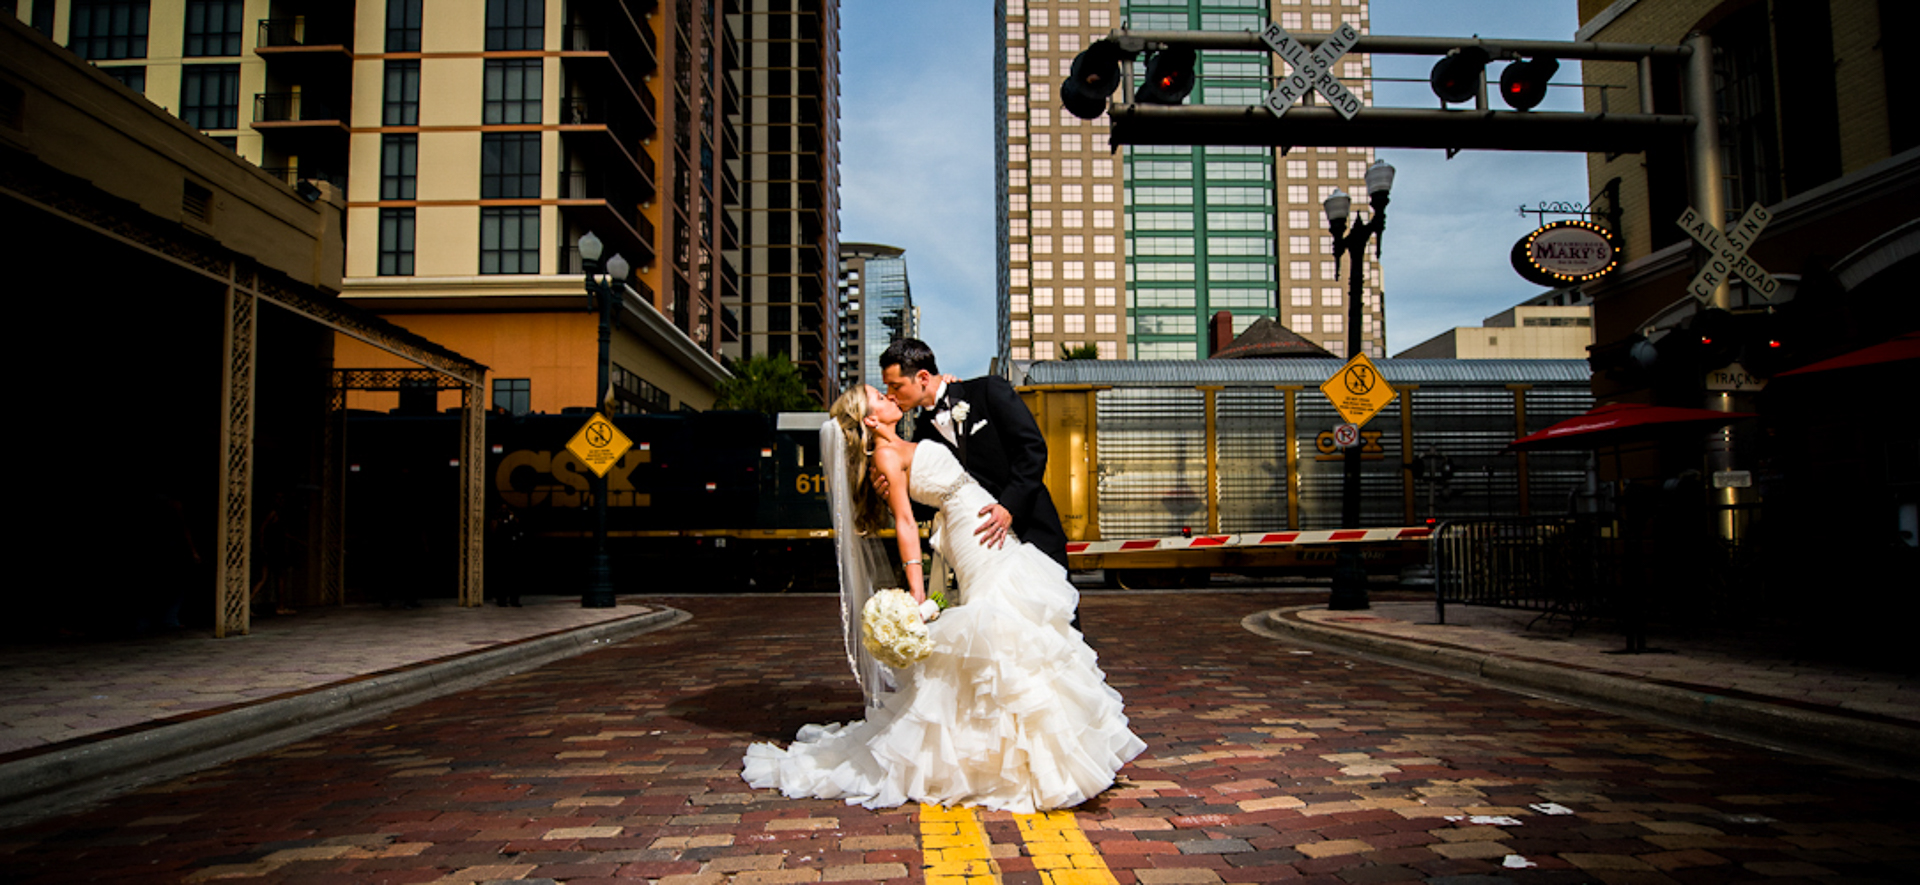 Orlando Wedding Photographer at Church Street Station